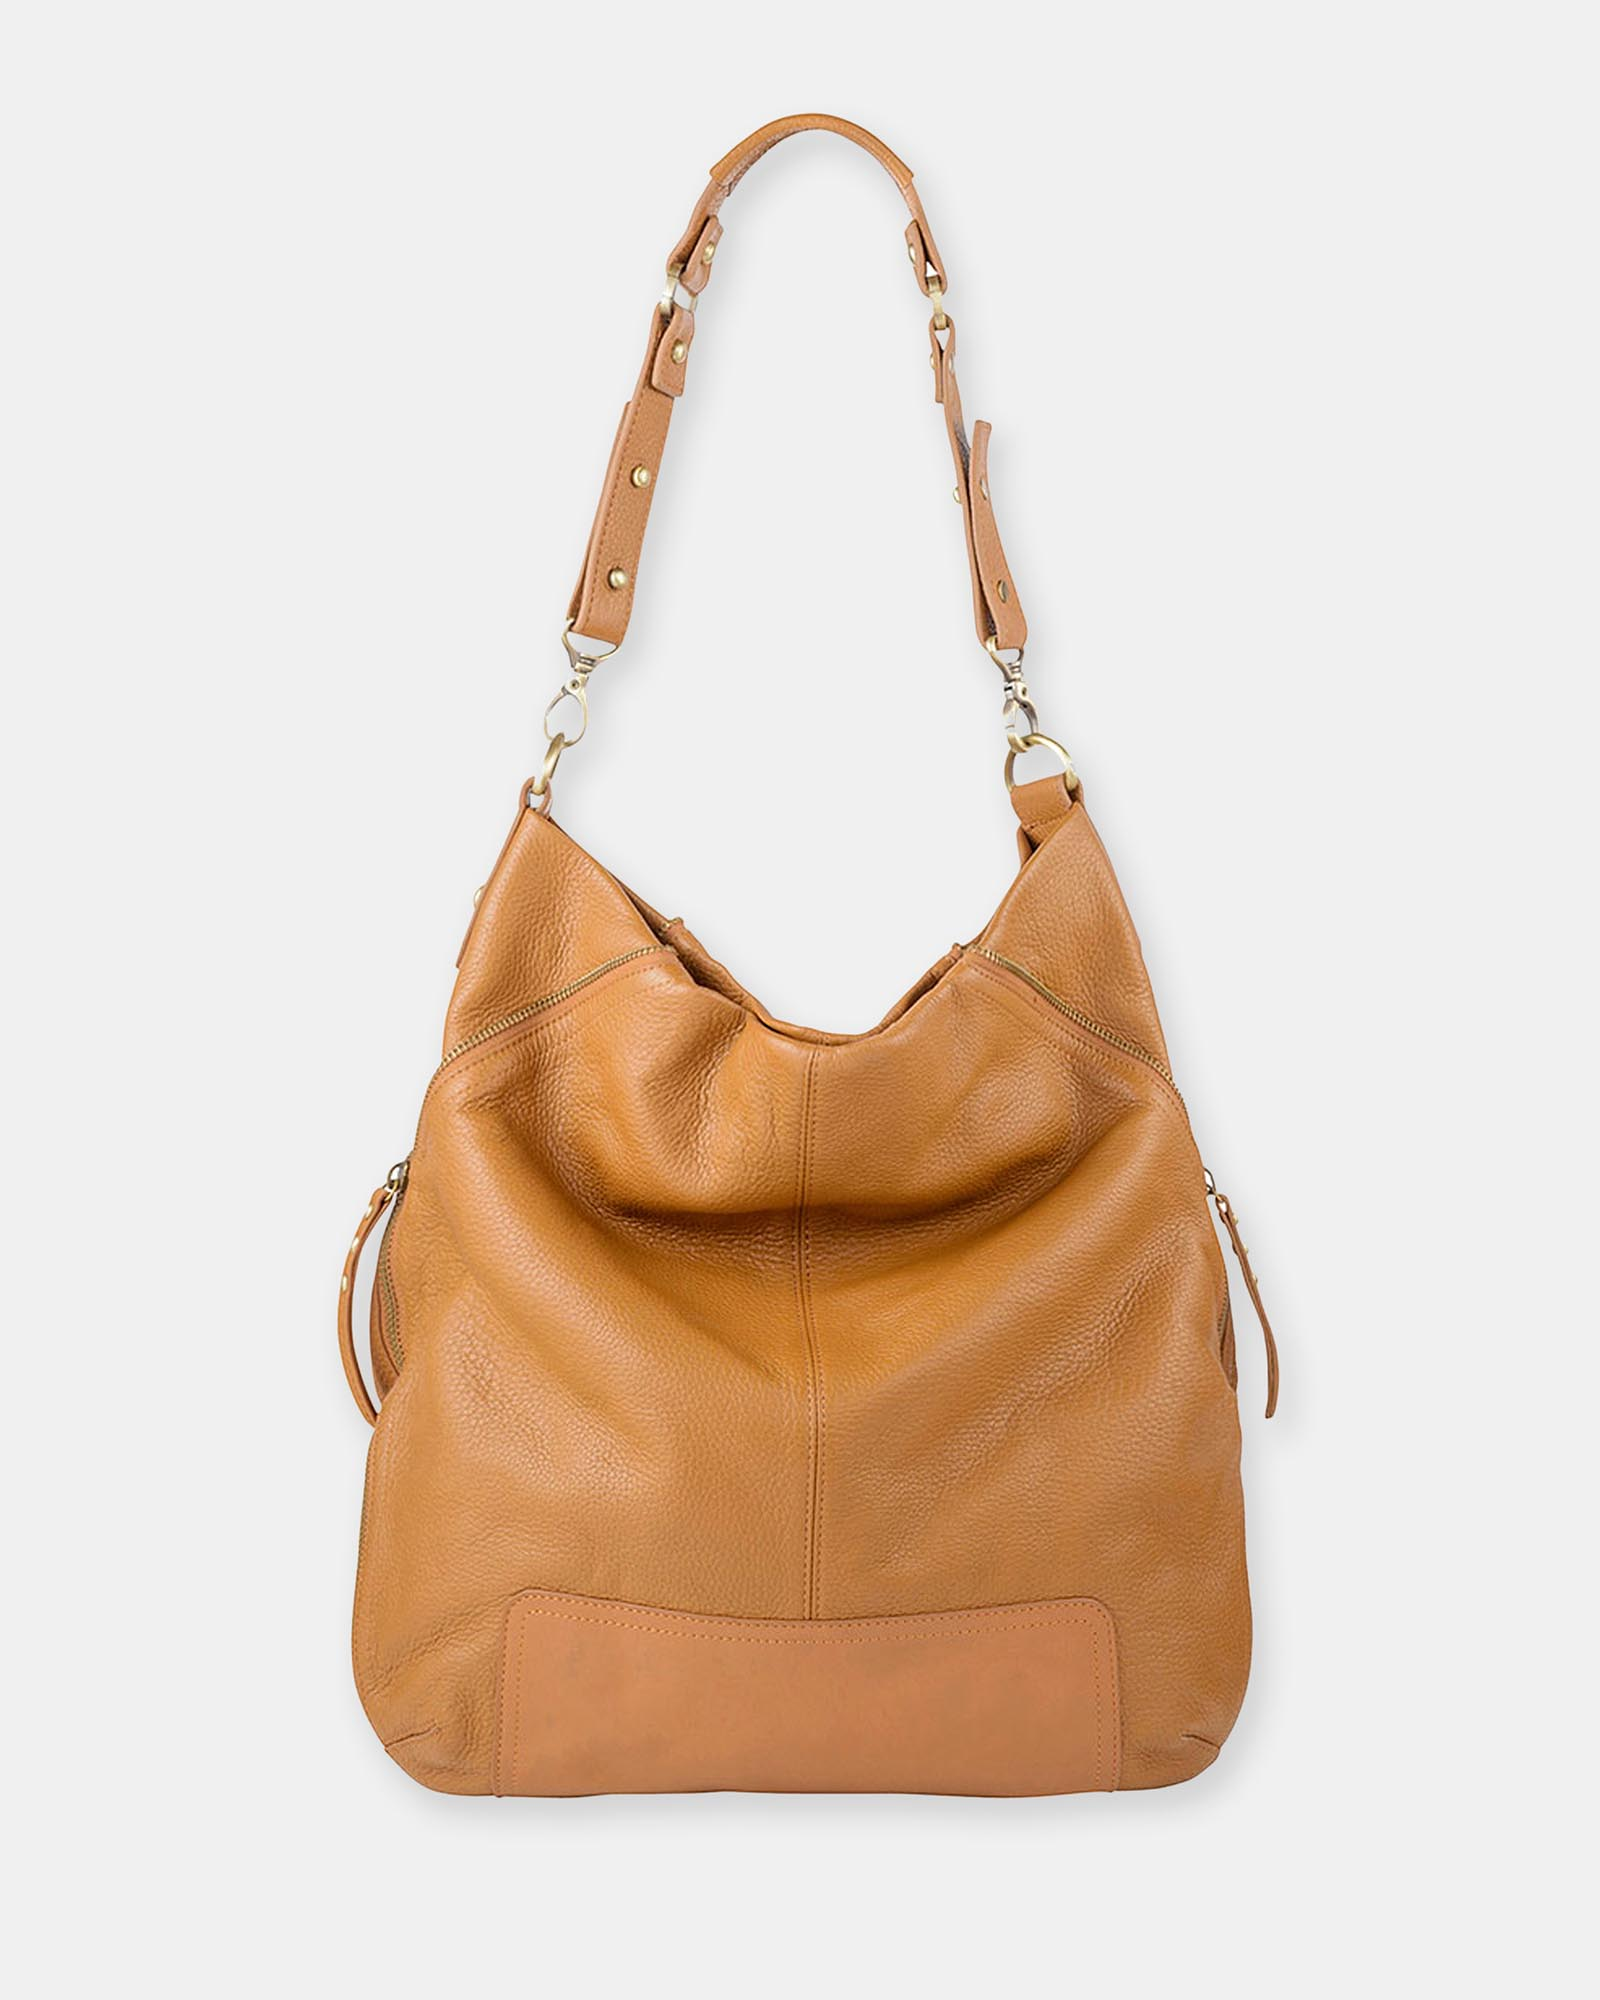 Cheap Handbags, Buy Handbags For Women Online With